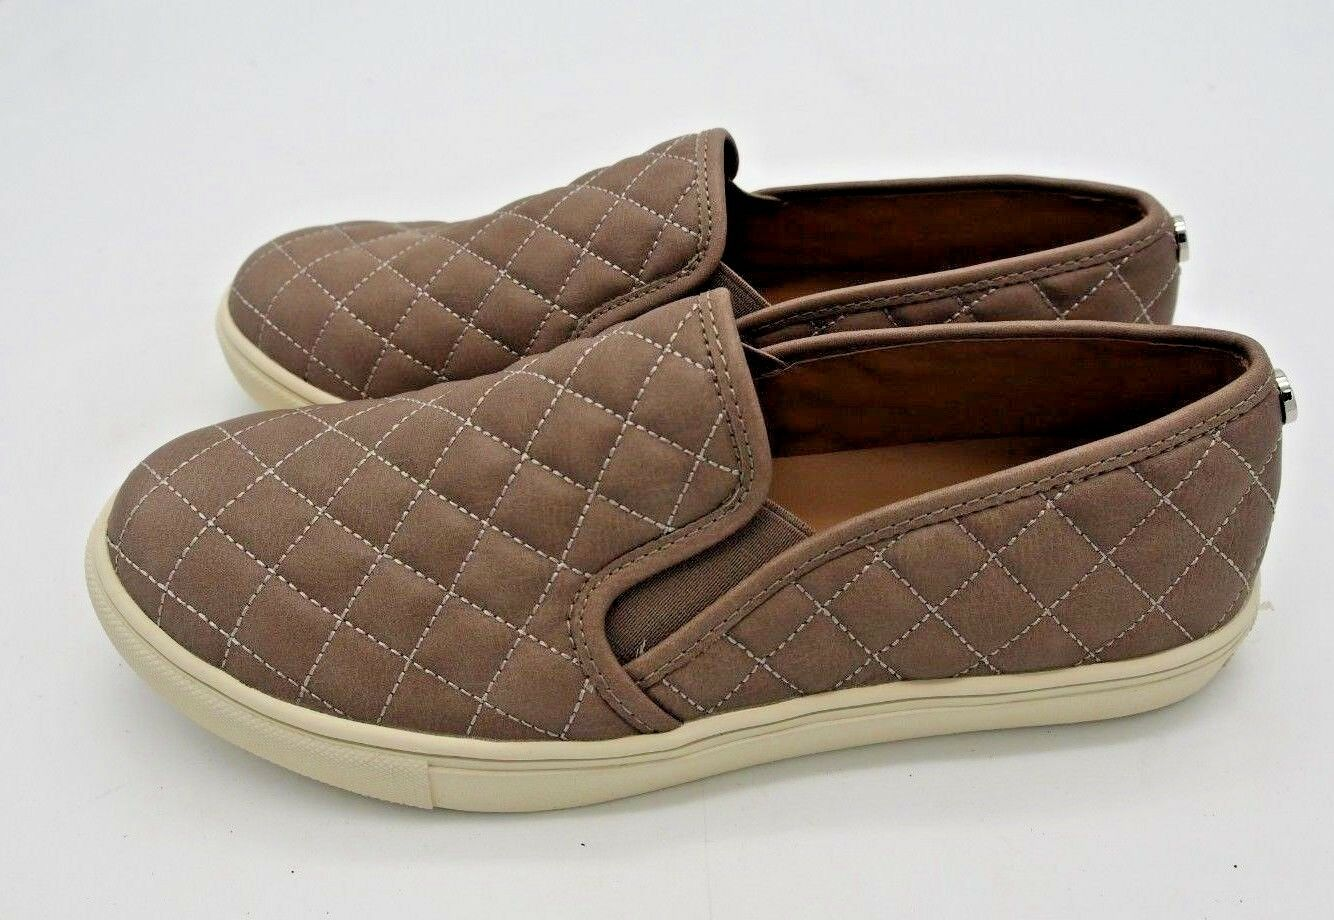 A5038 Women's Steve Madden Ecentrco Grey Faux Leather Slip On Sneakers US 9.5 M